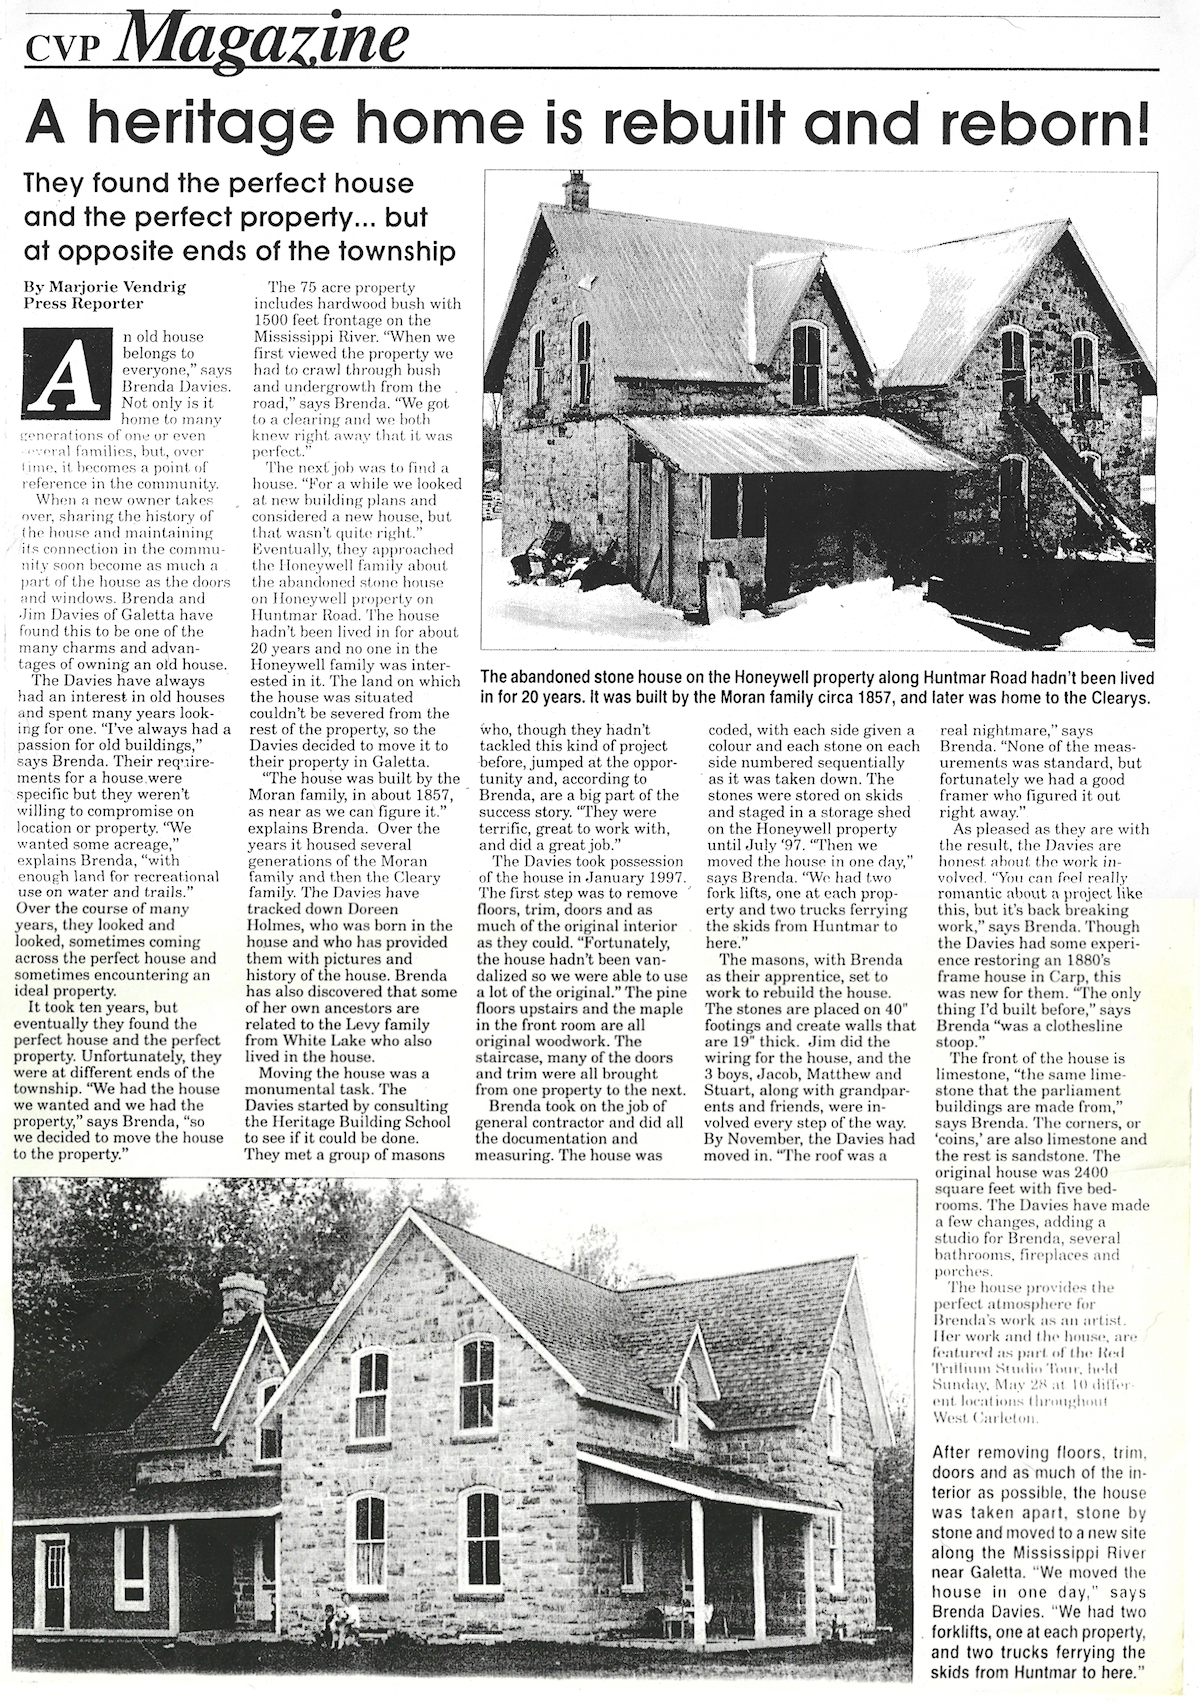 http://ottawavalleyirish.com/images/carpvalleypress_26may2000_moranhouse.jpg